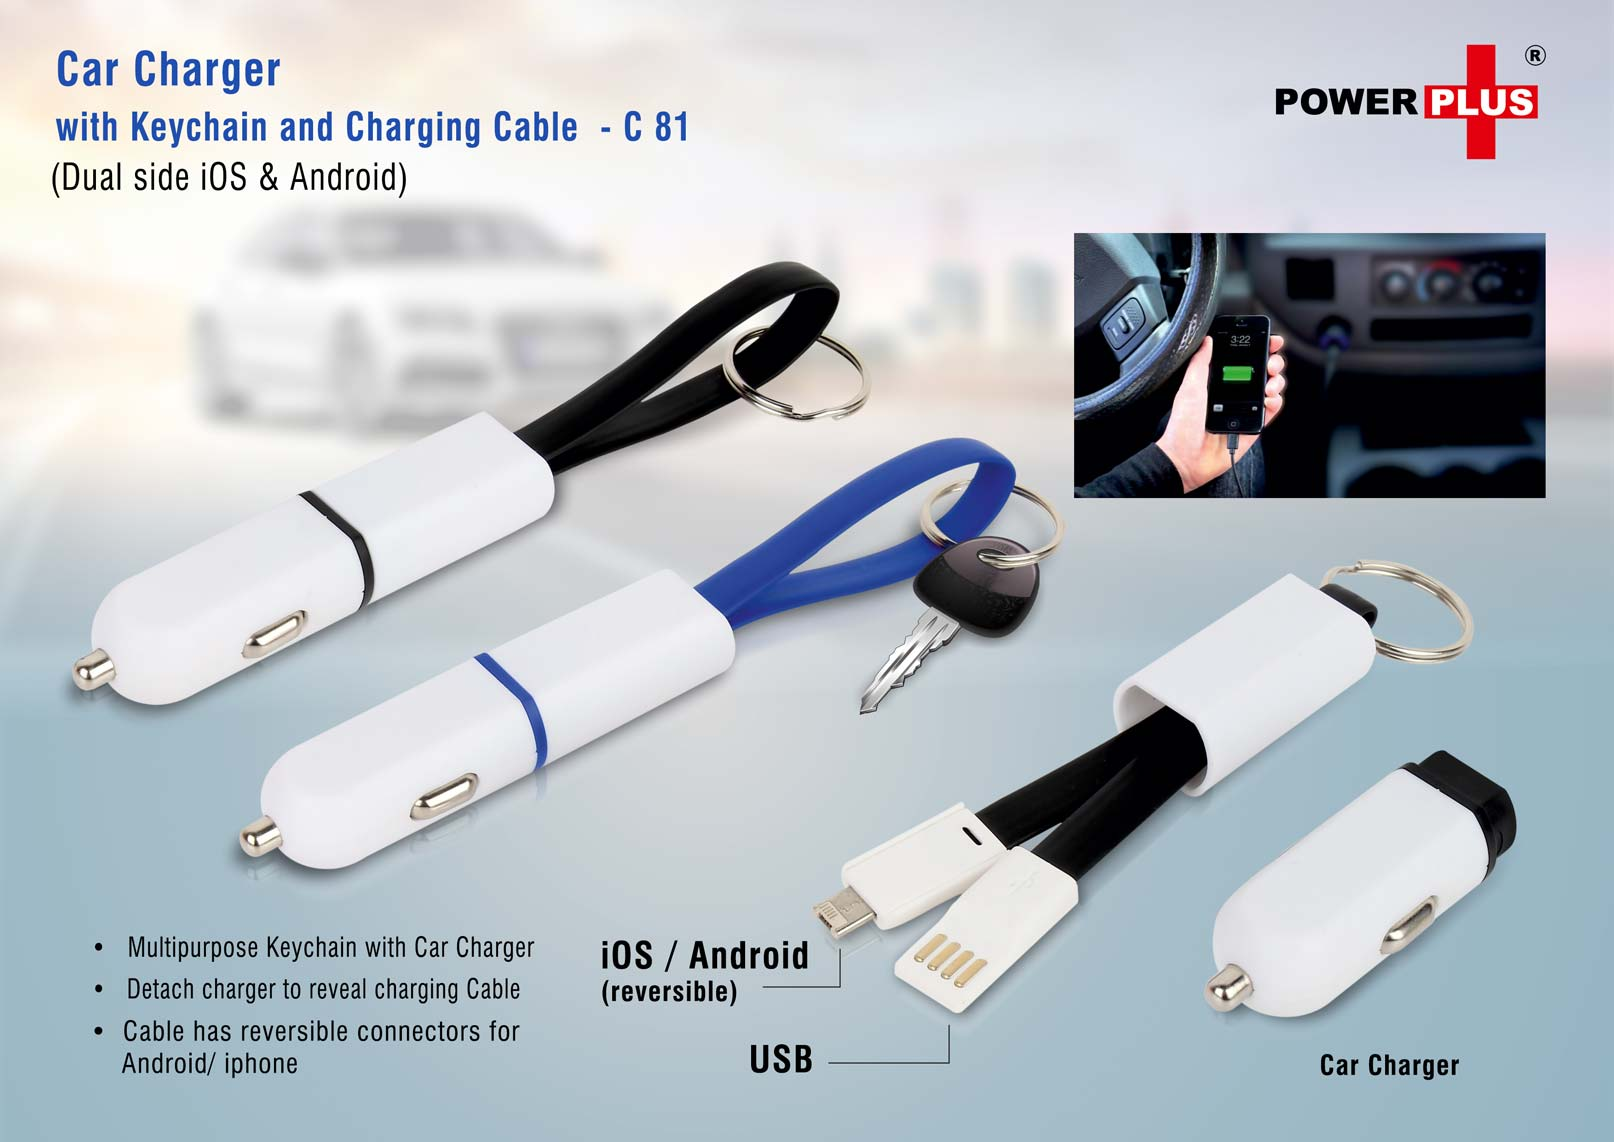 C81 - Car charger with keychain and charging cable (dual side iOS & Android)